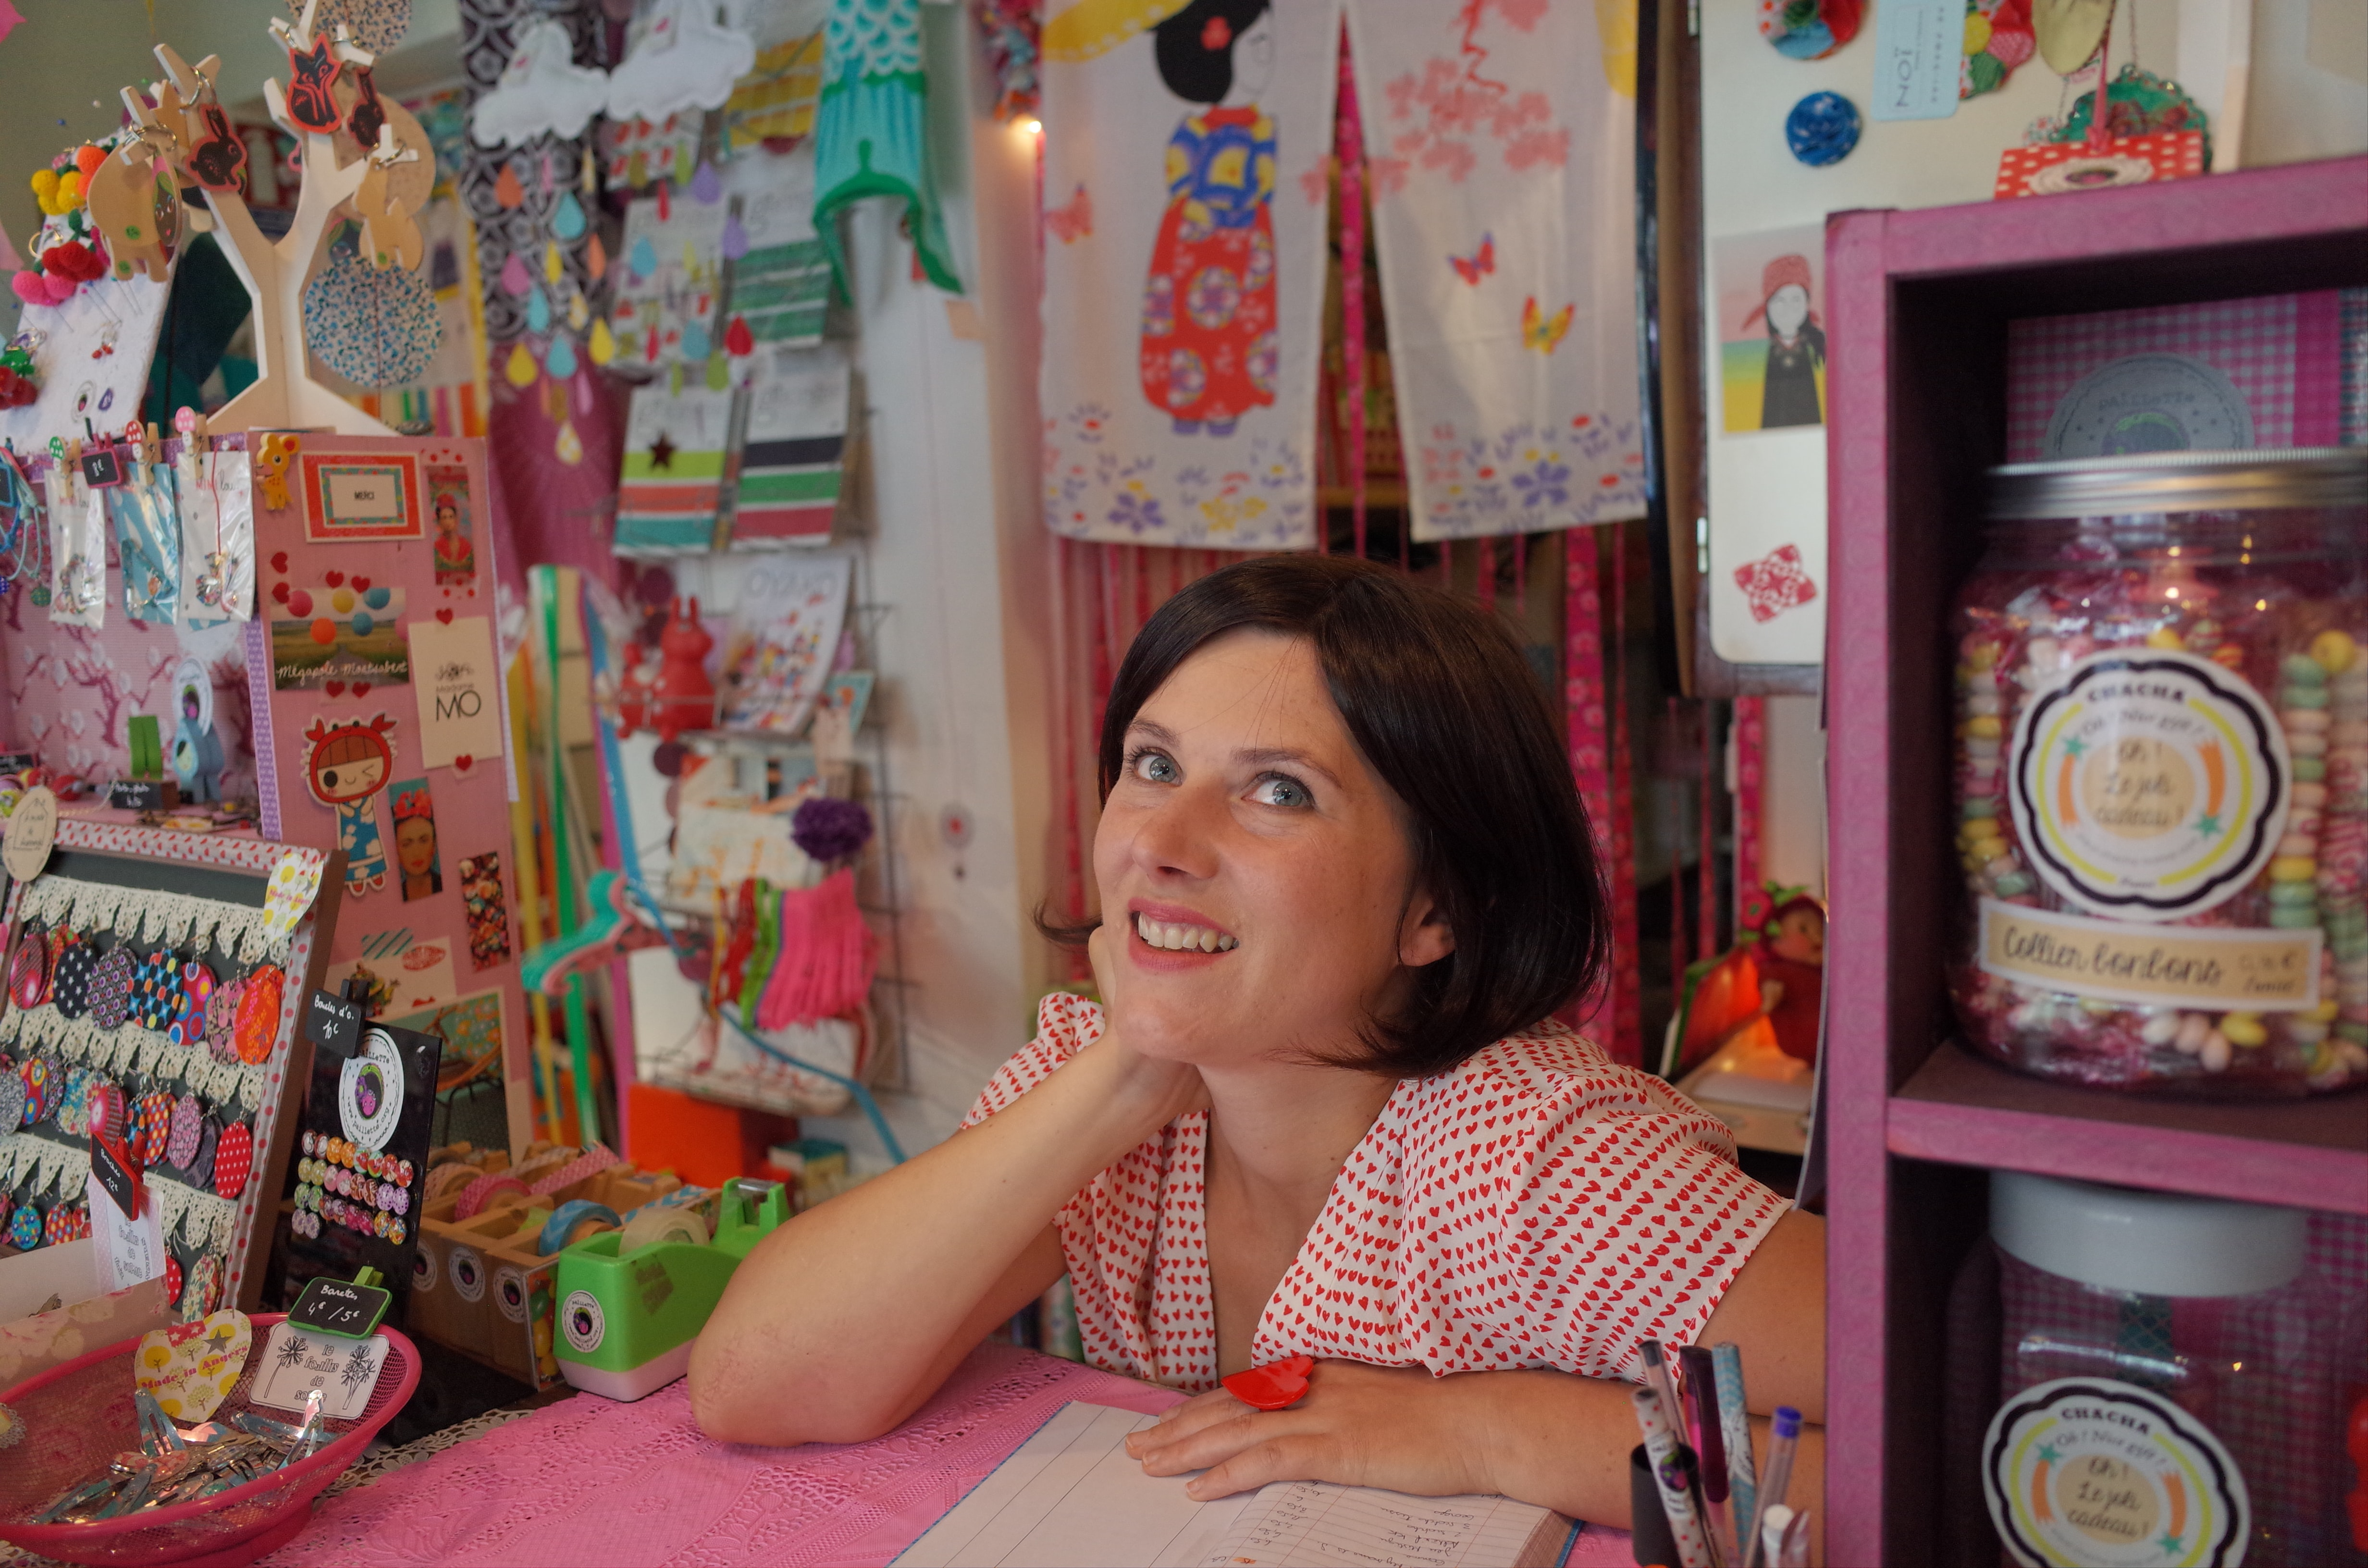 A smiling woman behind a counter with colorful trinkets around her